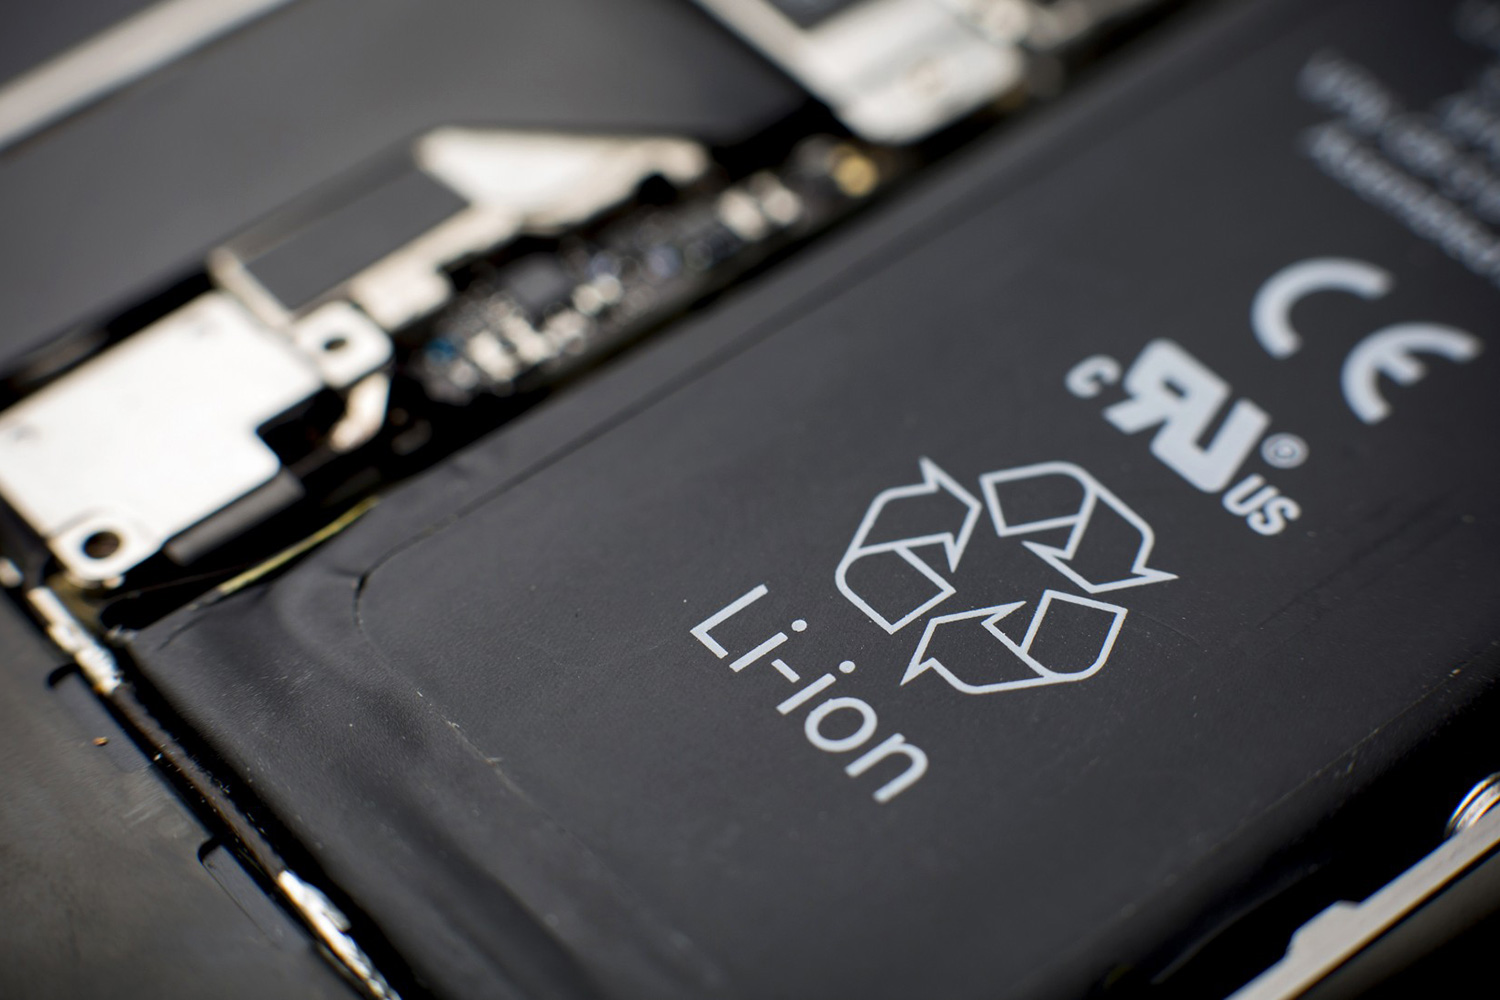 Lithium-ion batteries in your smartphone could soon be replaced by faster charging asphalt-based Lithium batteries.